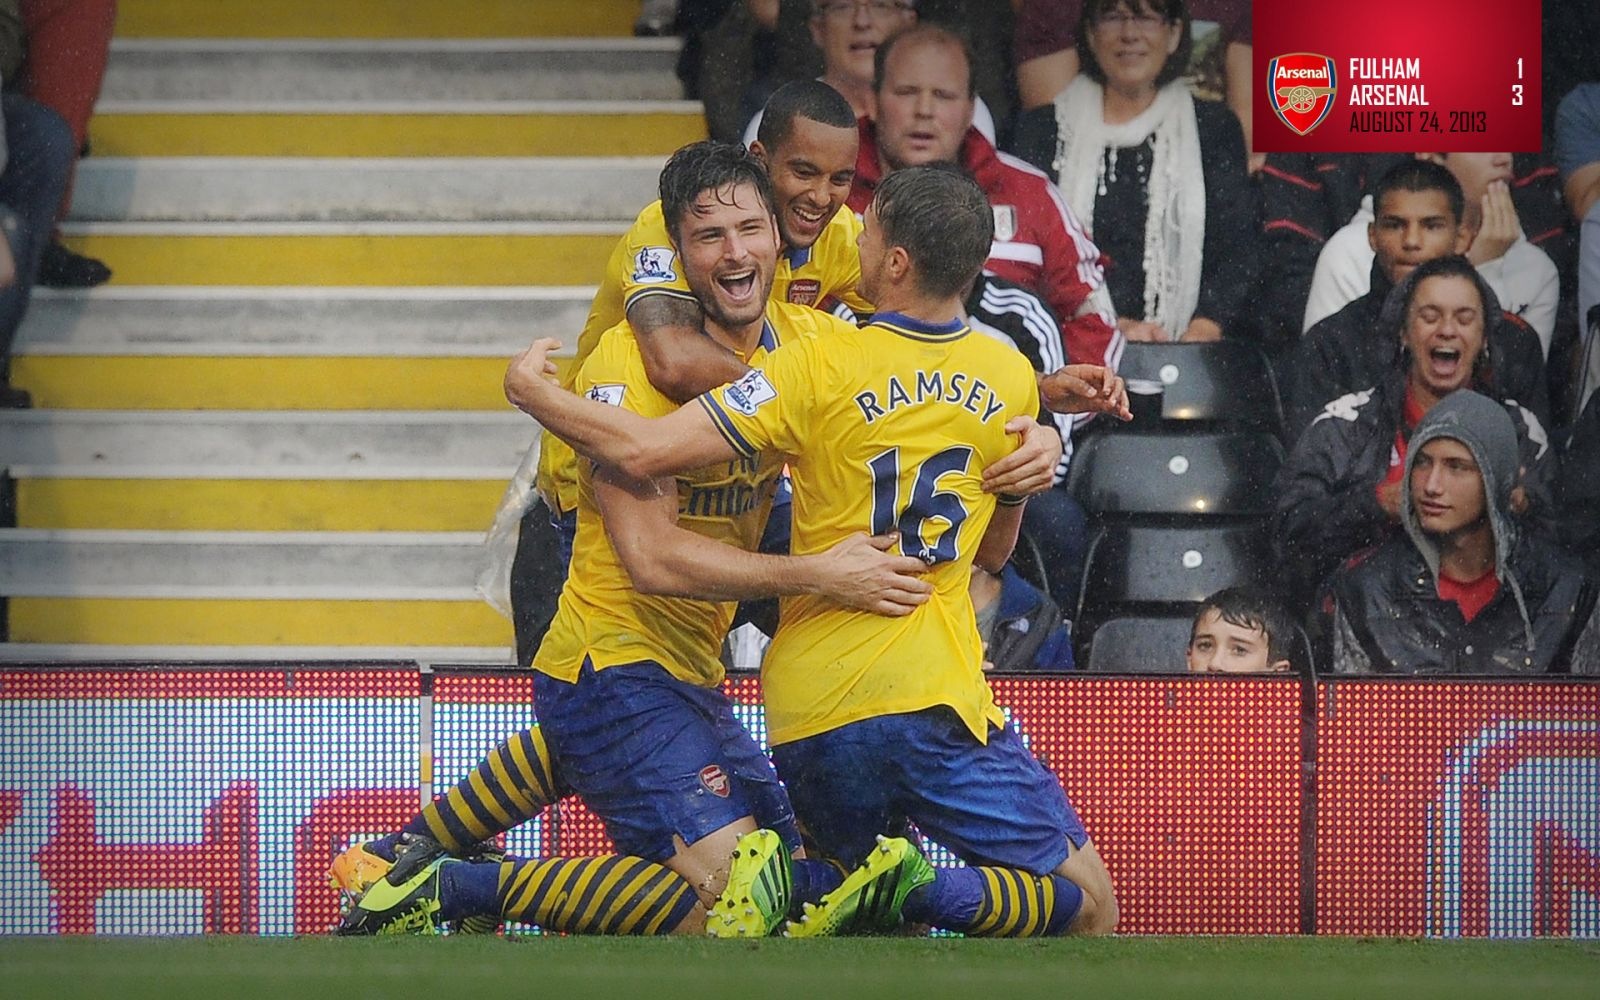 August 24, 2013 - Fulham 1-3 Arsenal